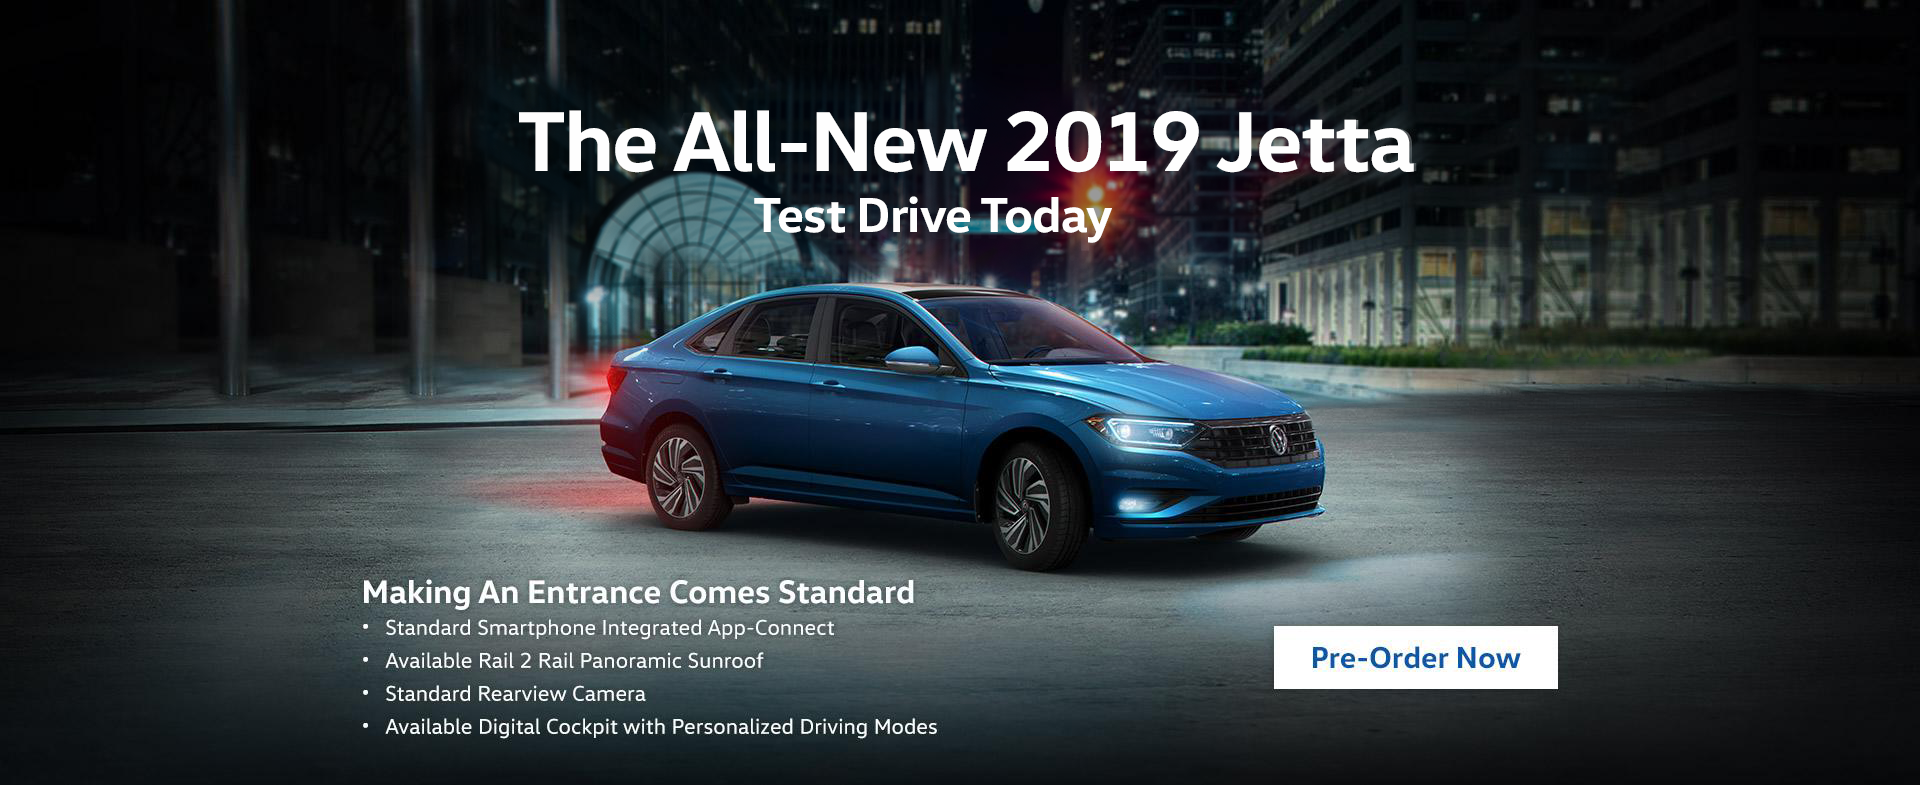 Pre-Order the 2019 Jetta at Humberview